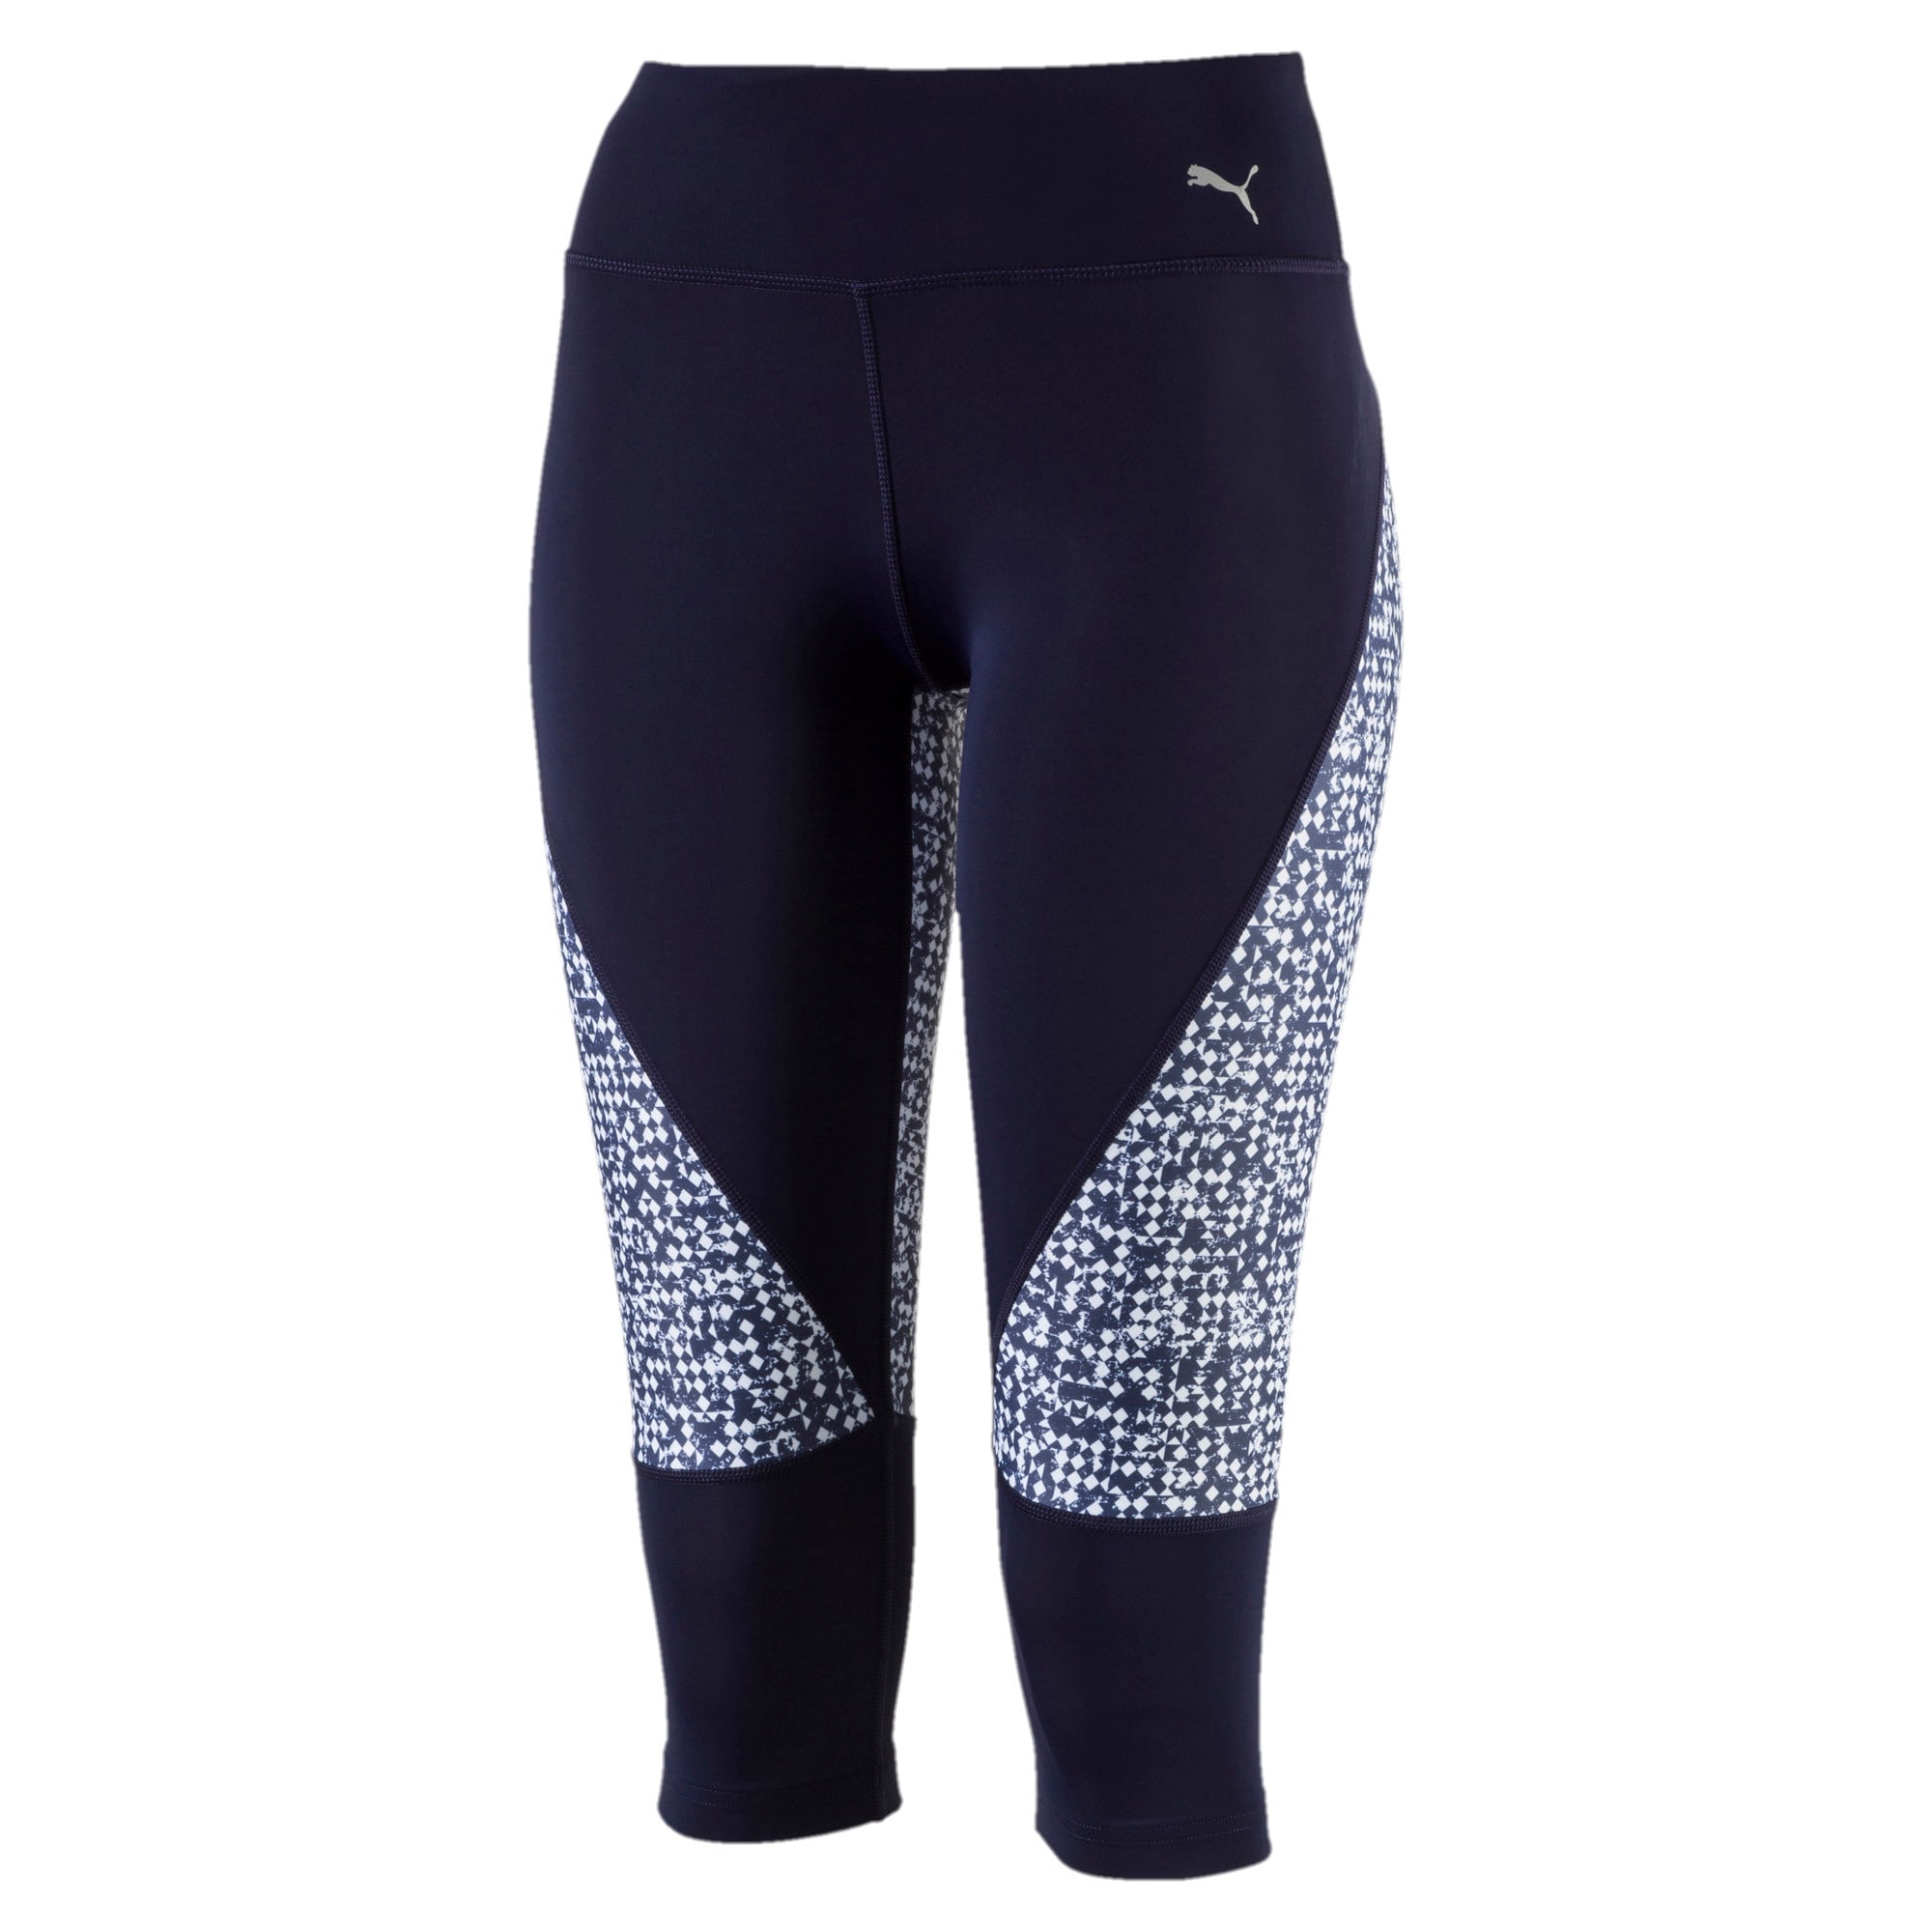 Thumbnail 1 of Active Training Women's Culture Surf 3/4 Tights, Peacoat-white box print, medium-IND